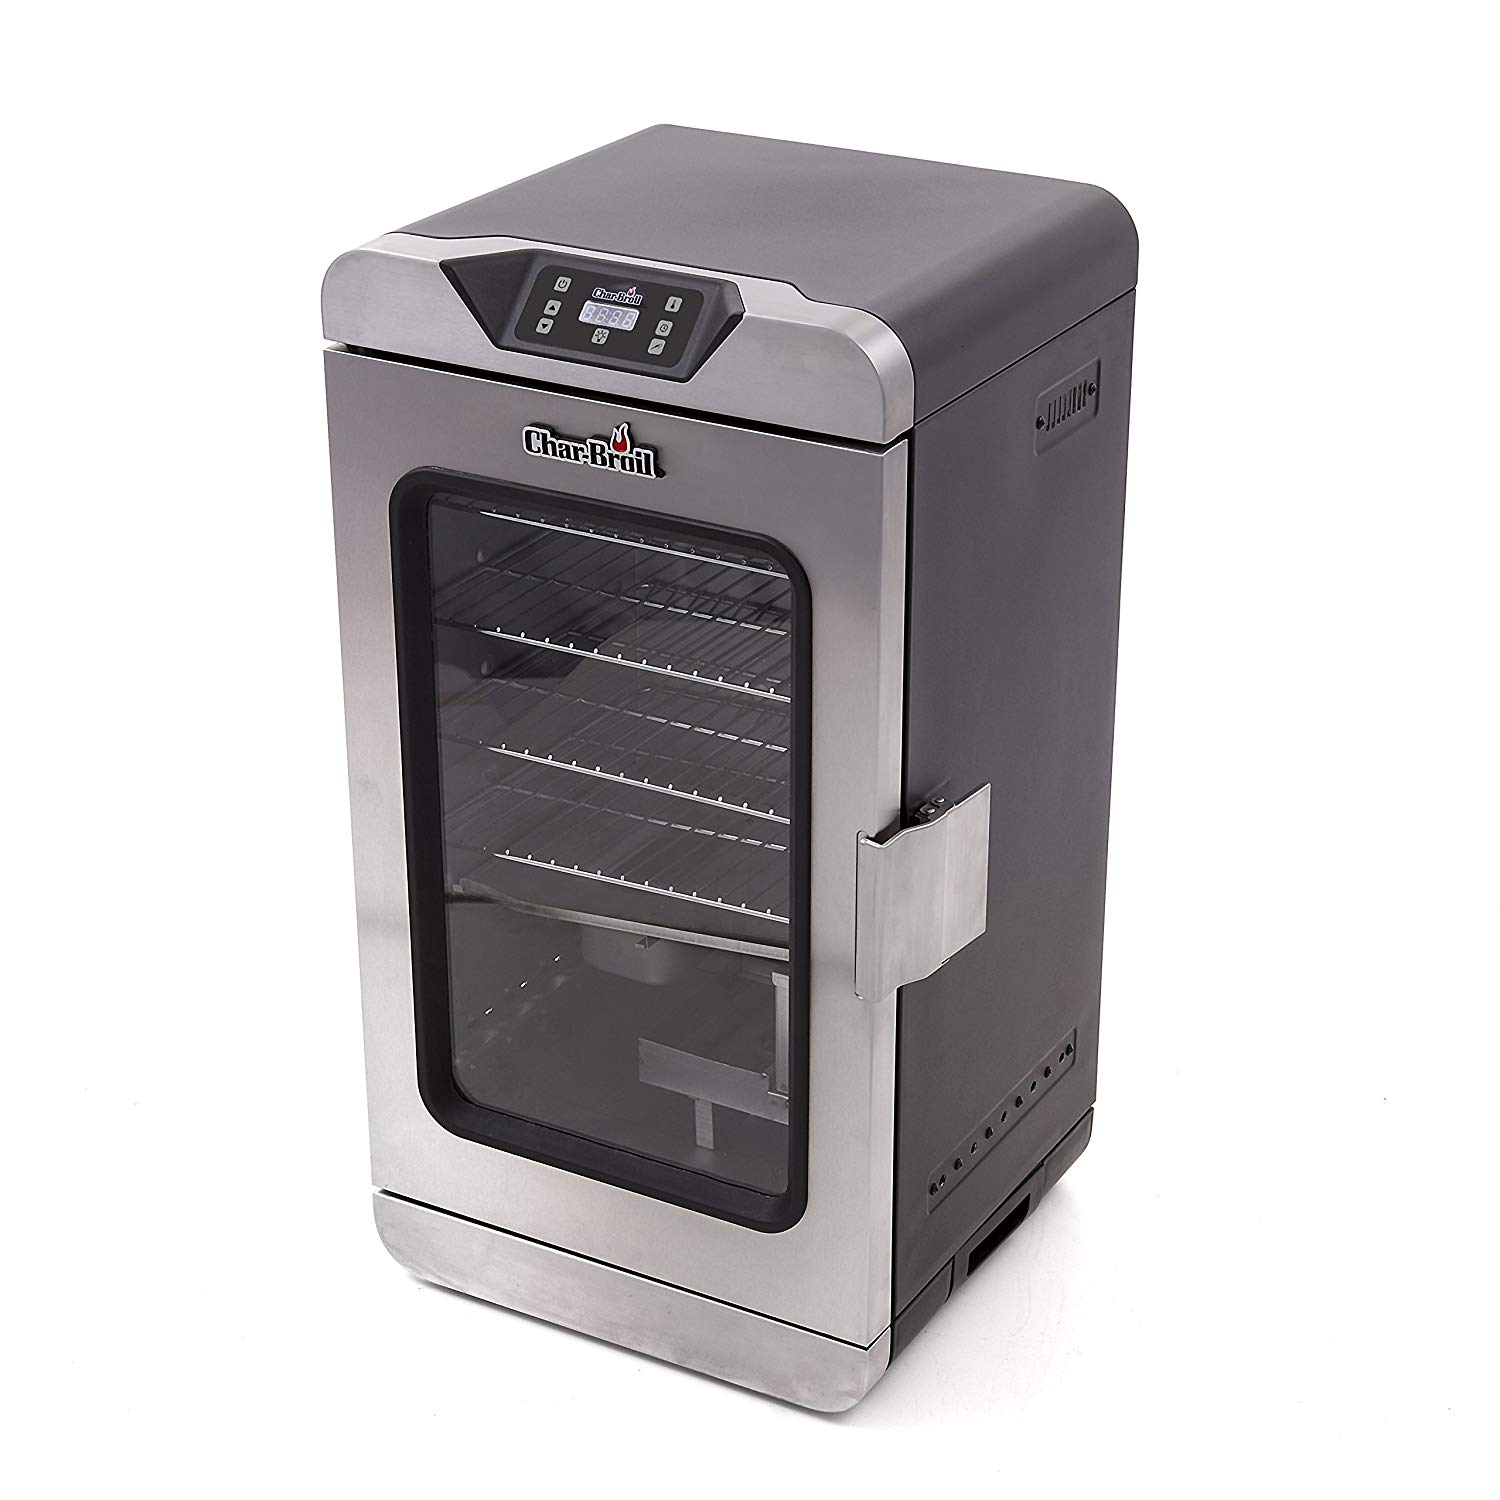 Char-Broil Deluxe 17402004 electric smoker